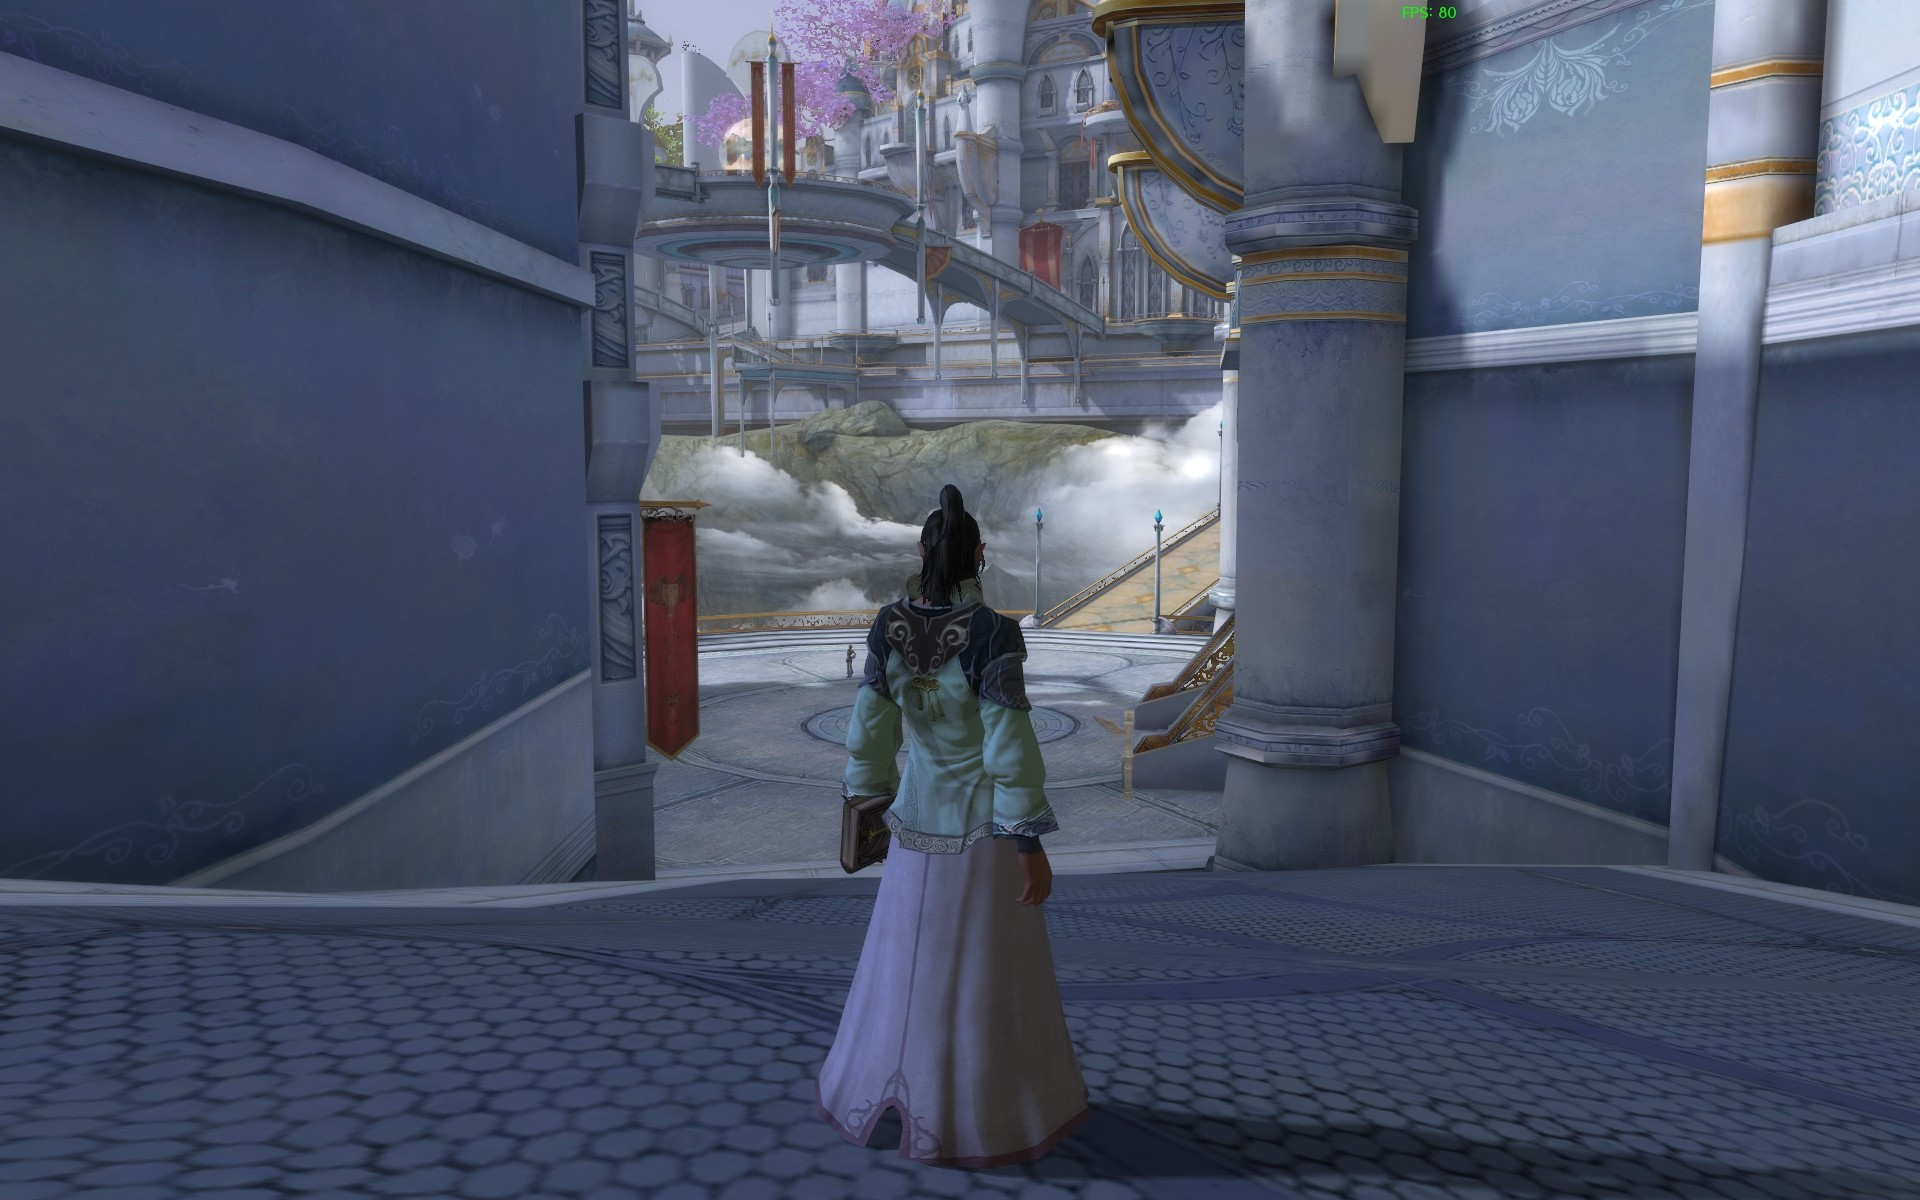 Aion - As I walked into the city, my jaw dropped